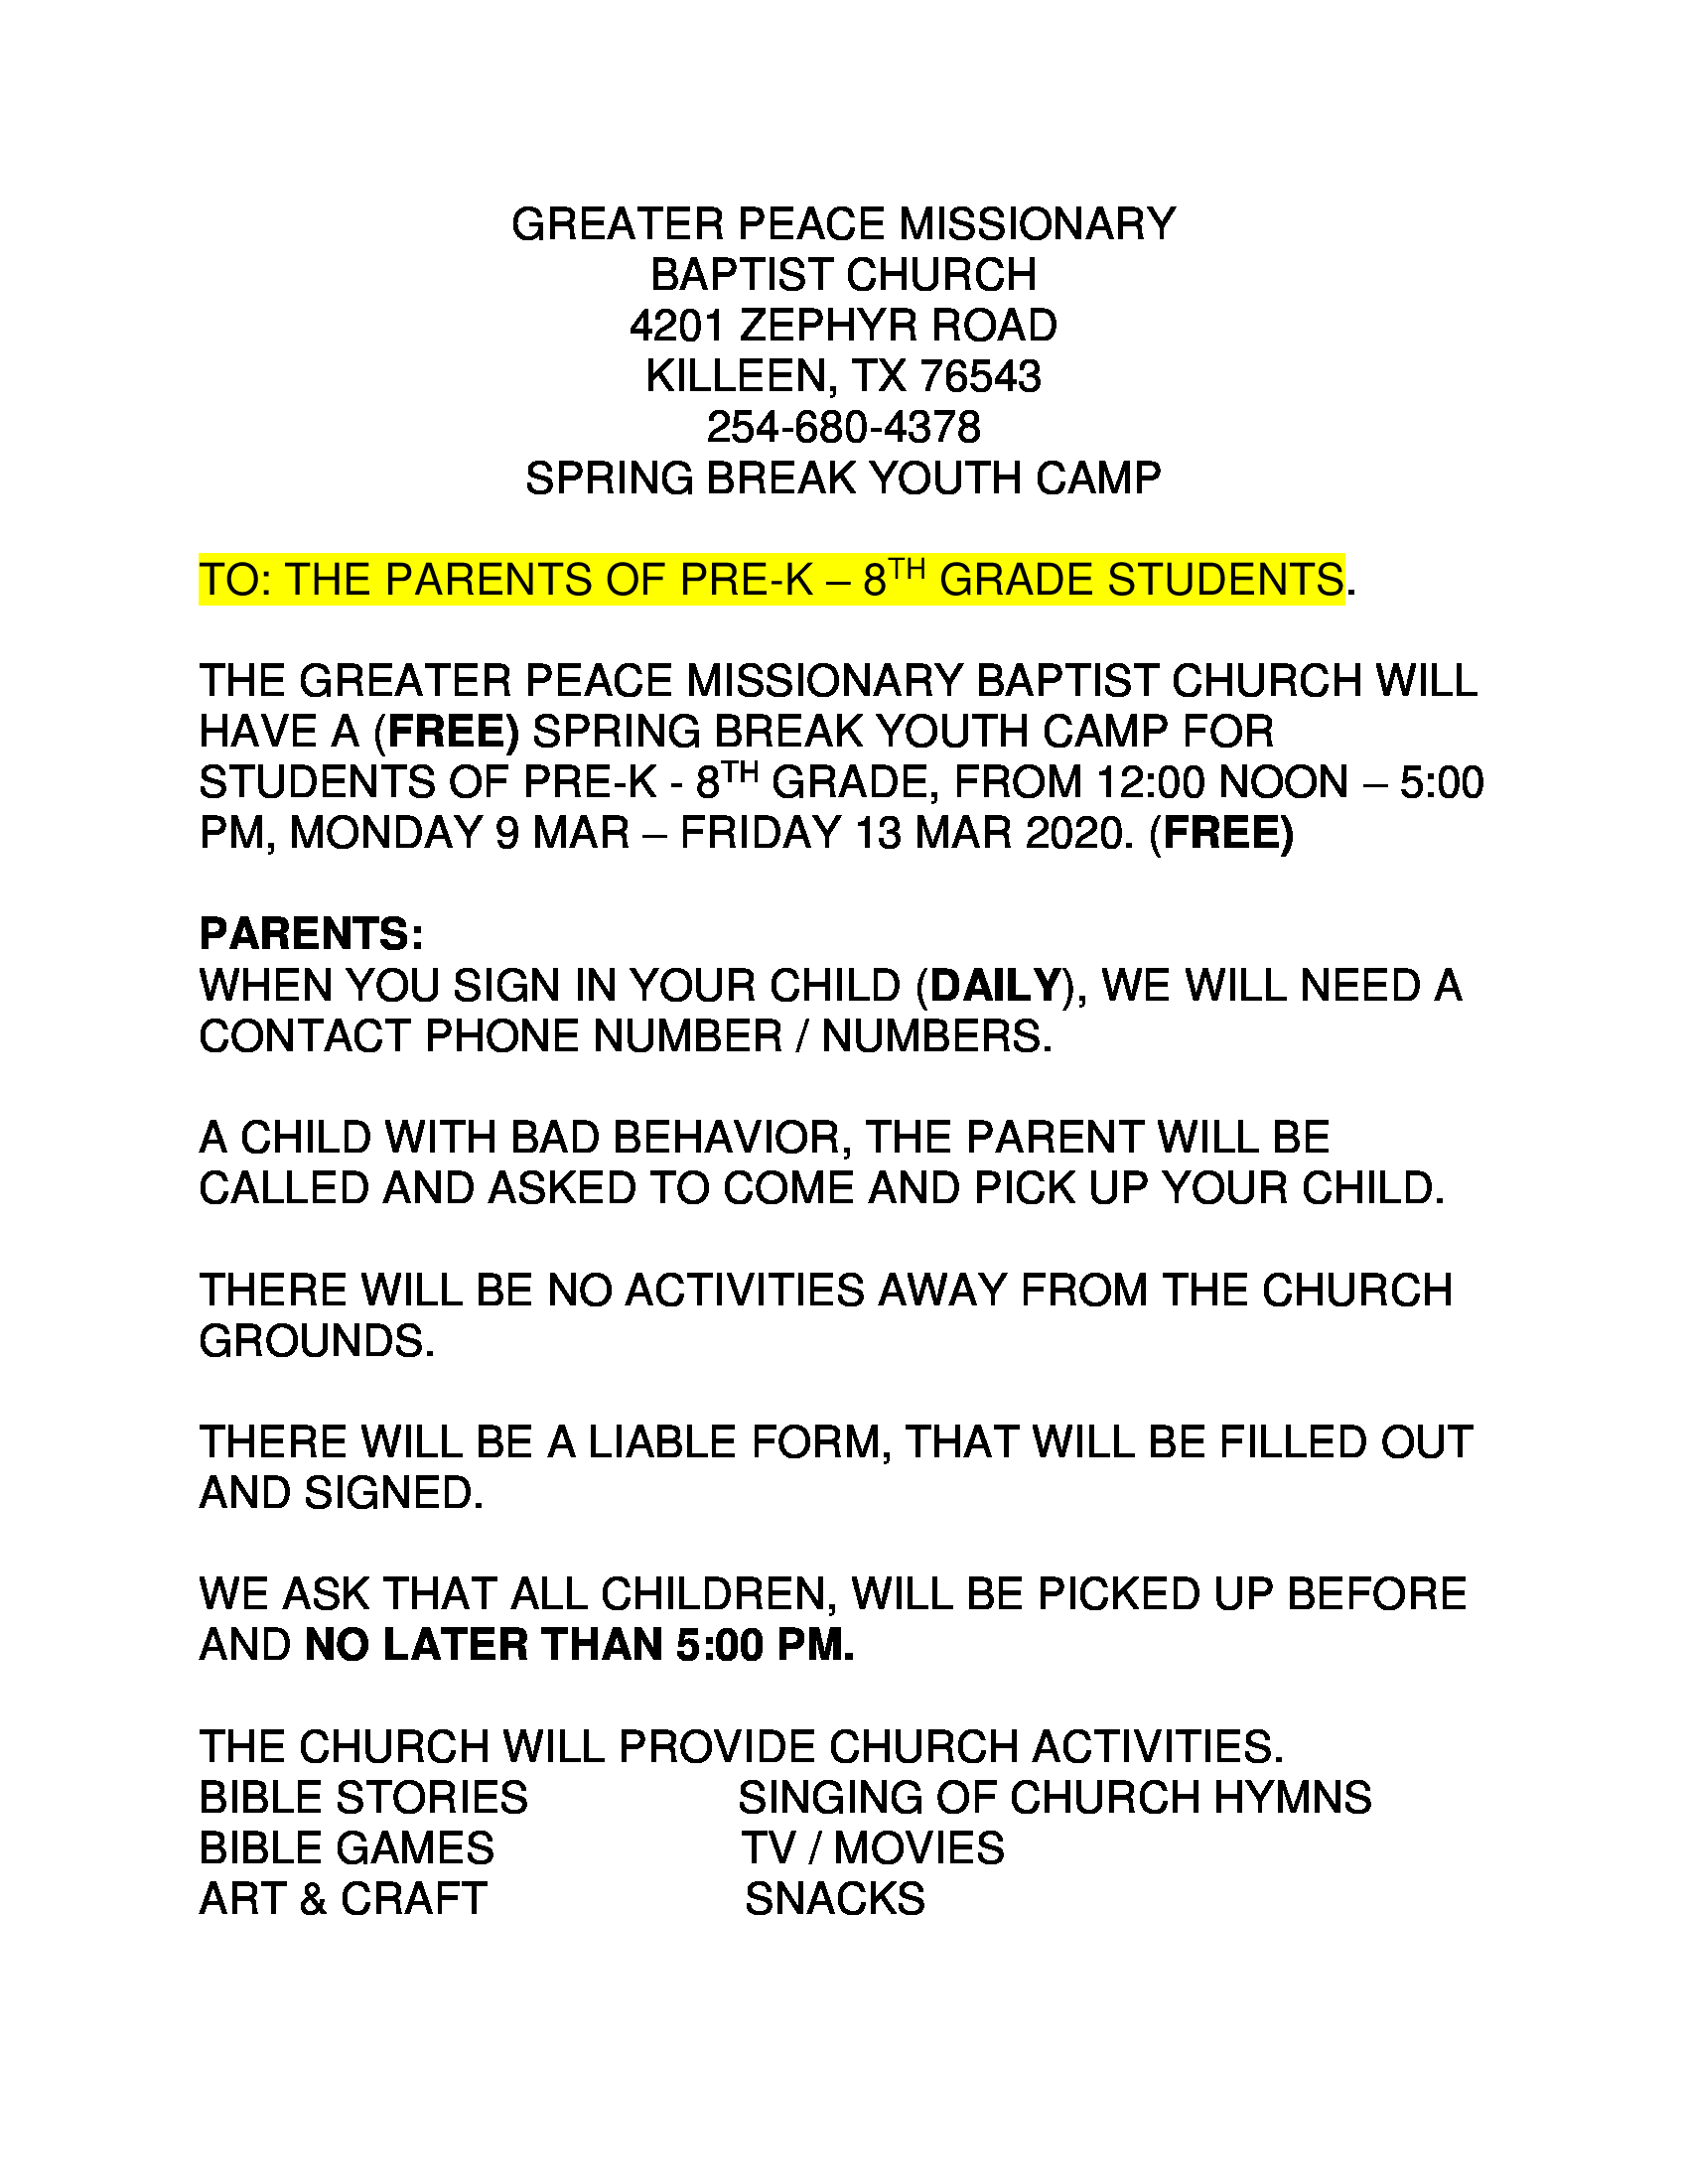 gpmbc-notice-to-parents.jpeg